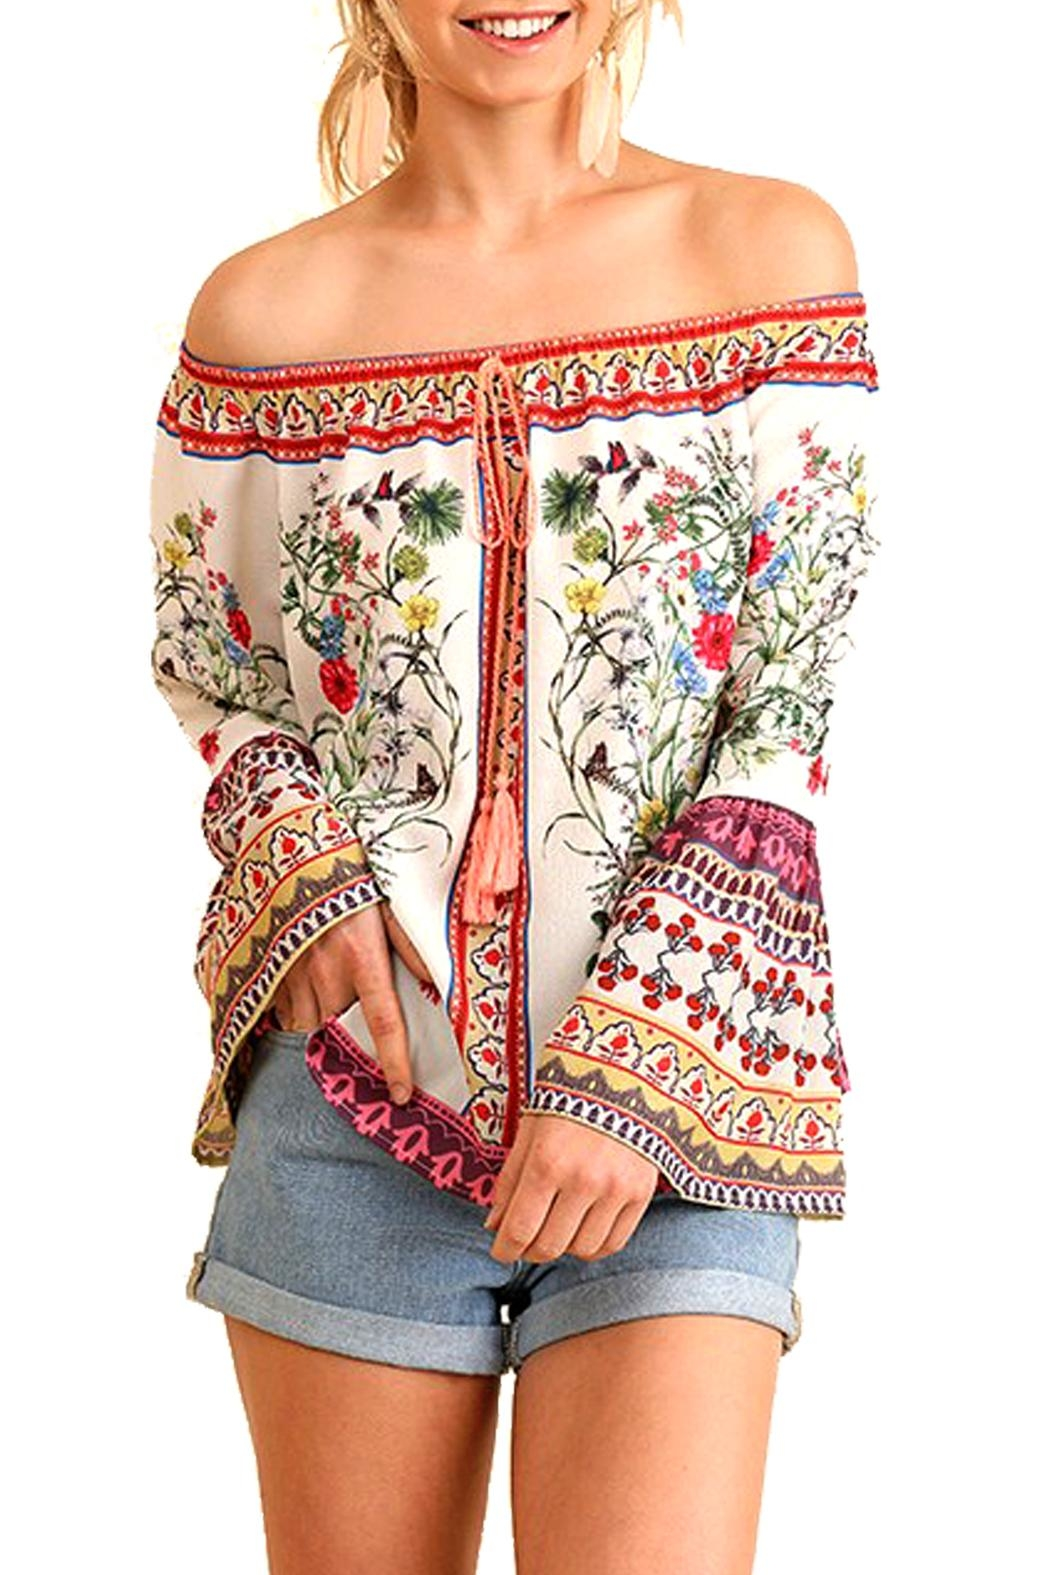 Umgee USA Floral Off-The-Shoulder Top - Main Image